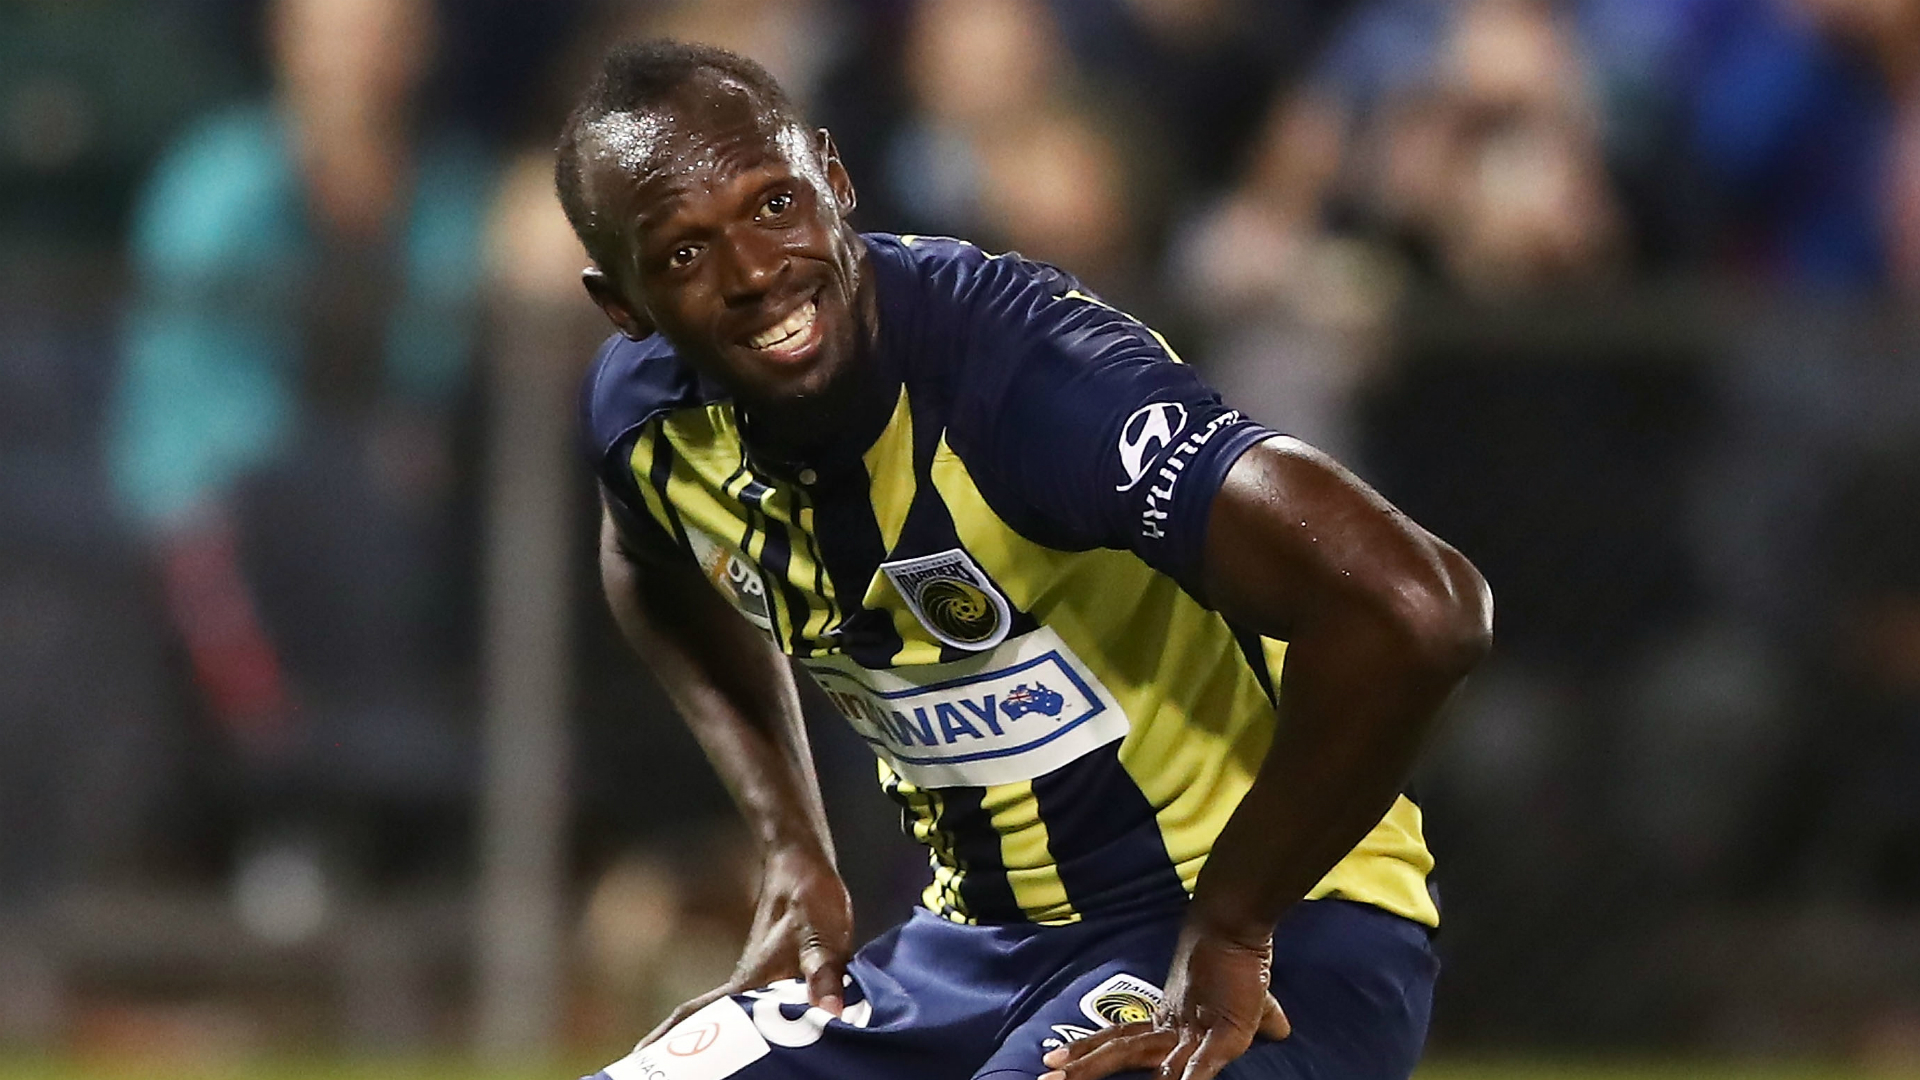 'I'm not even a professional footballer', Usain Bolt questions drugs test notice